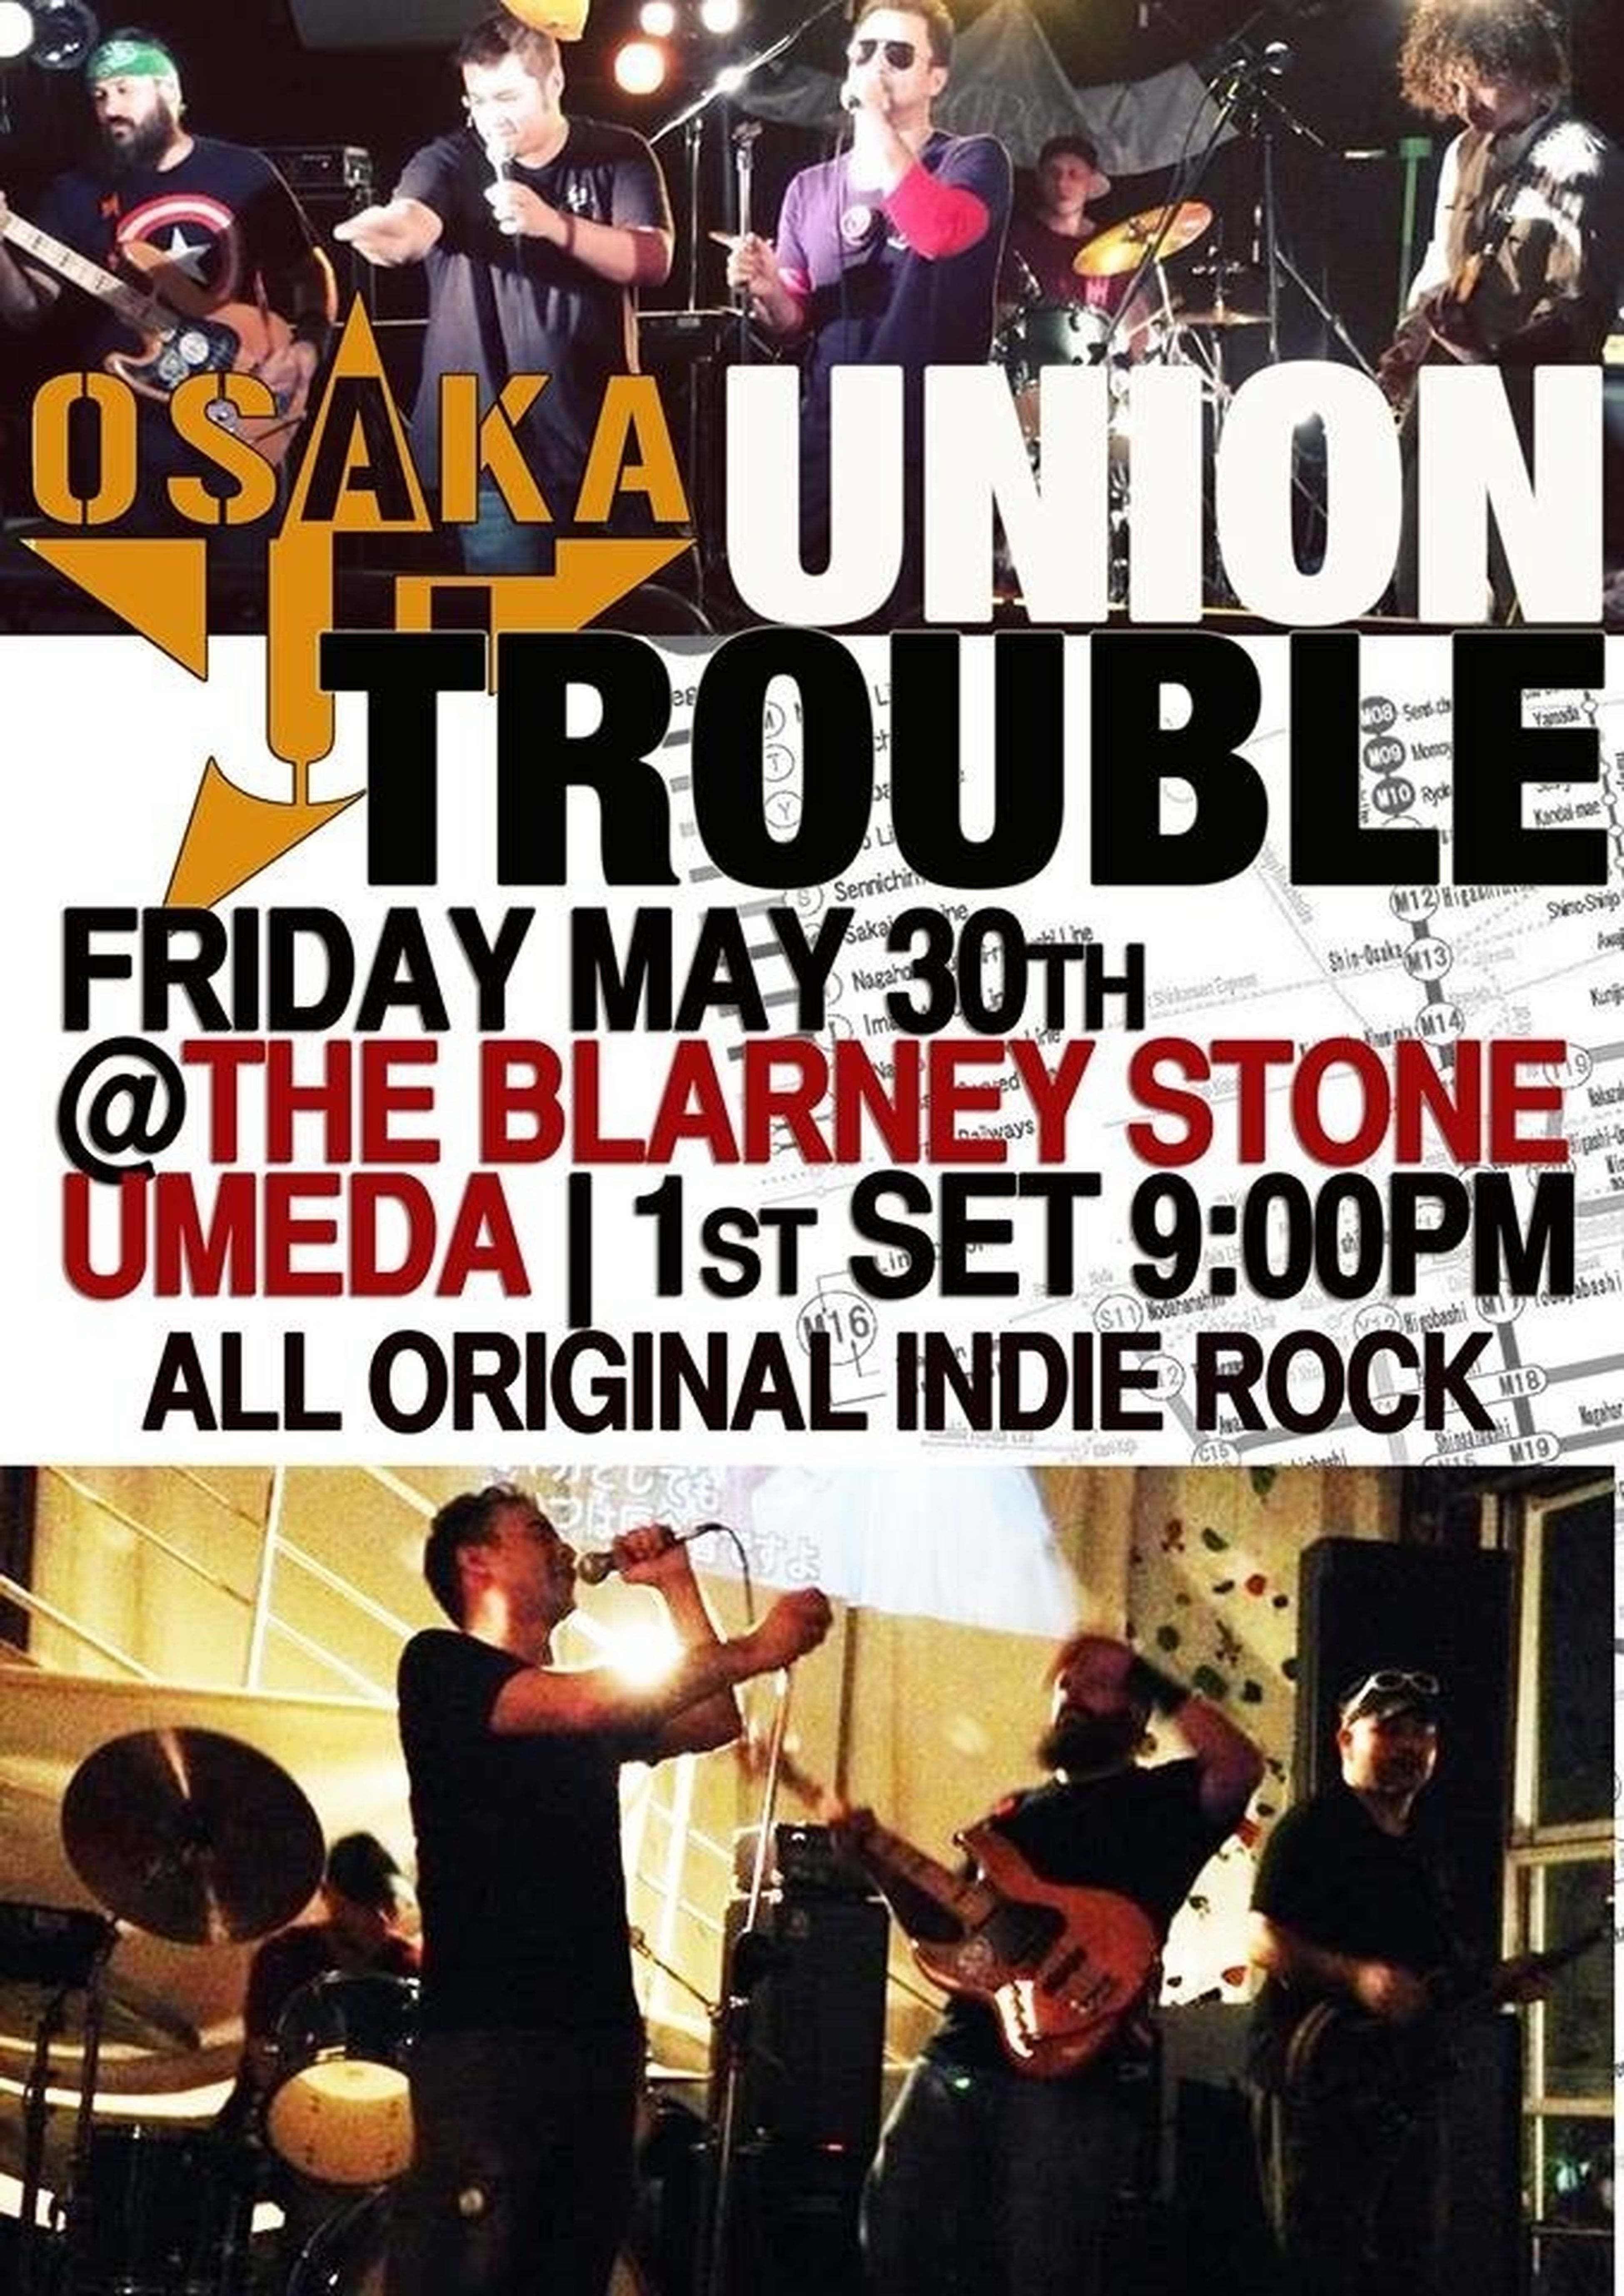 Tonight! Umeda Blarney Stone! No entry charge!! Come see us! Union Trouble The Blarney Stone Umeda